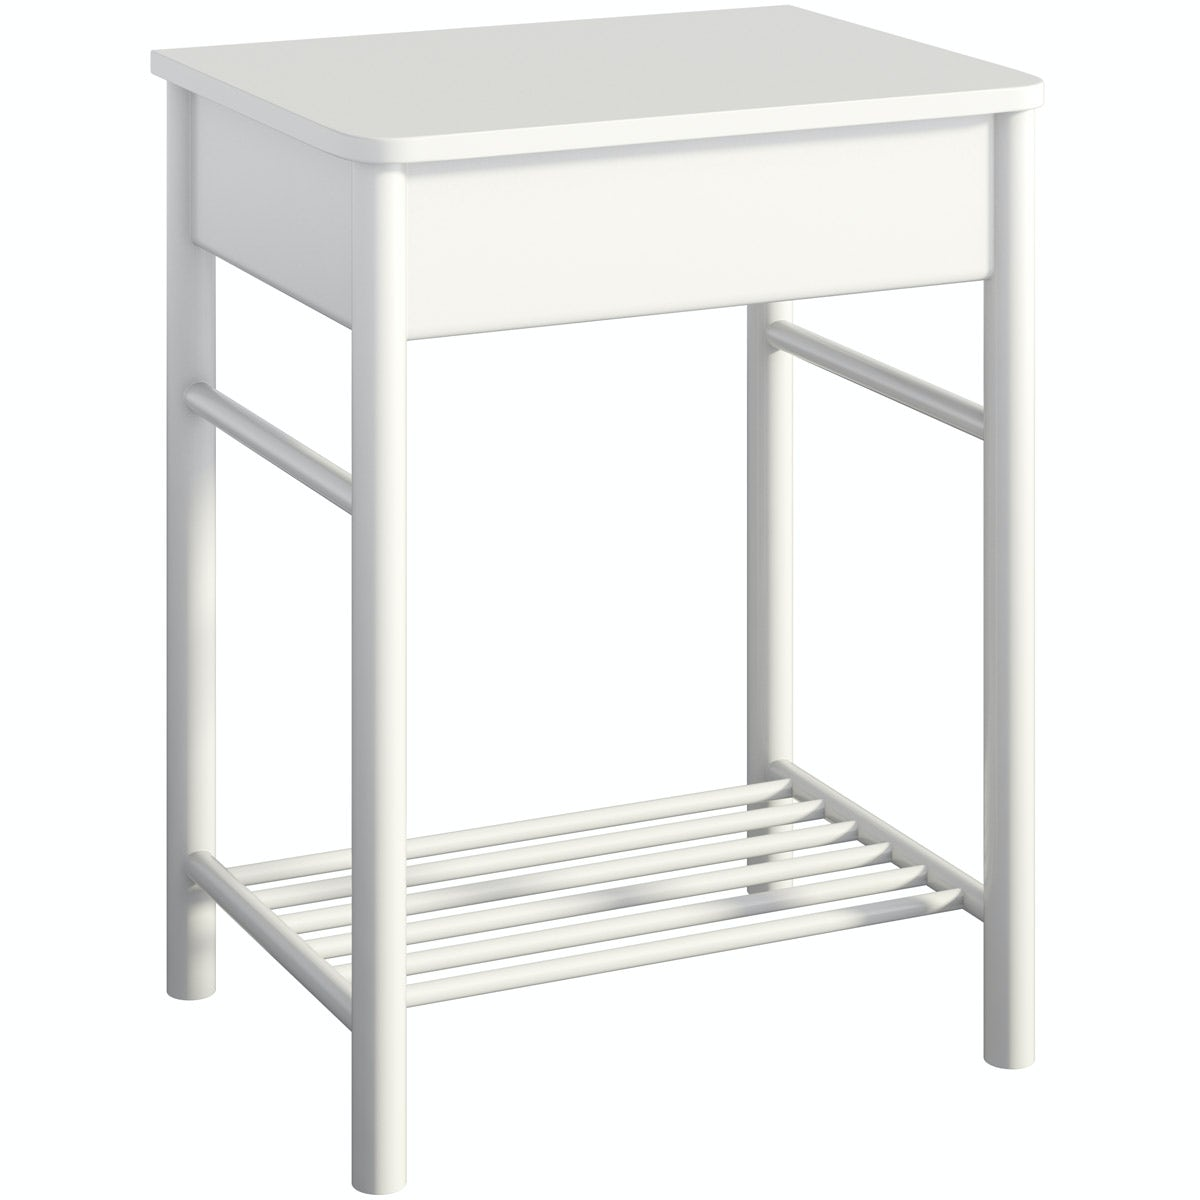 Mode South Bank white washstand with top